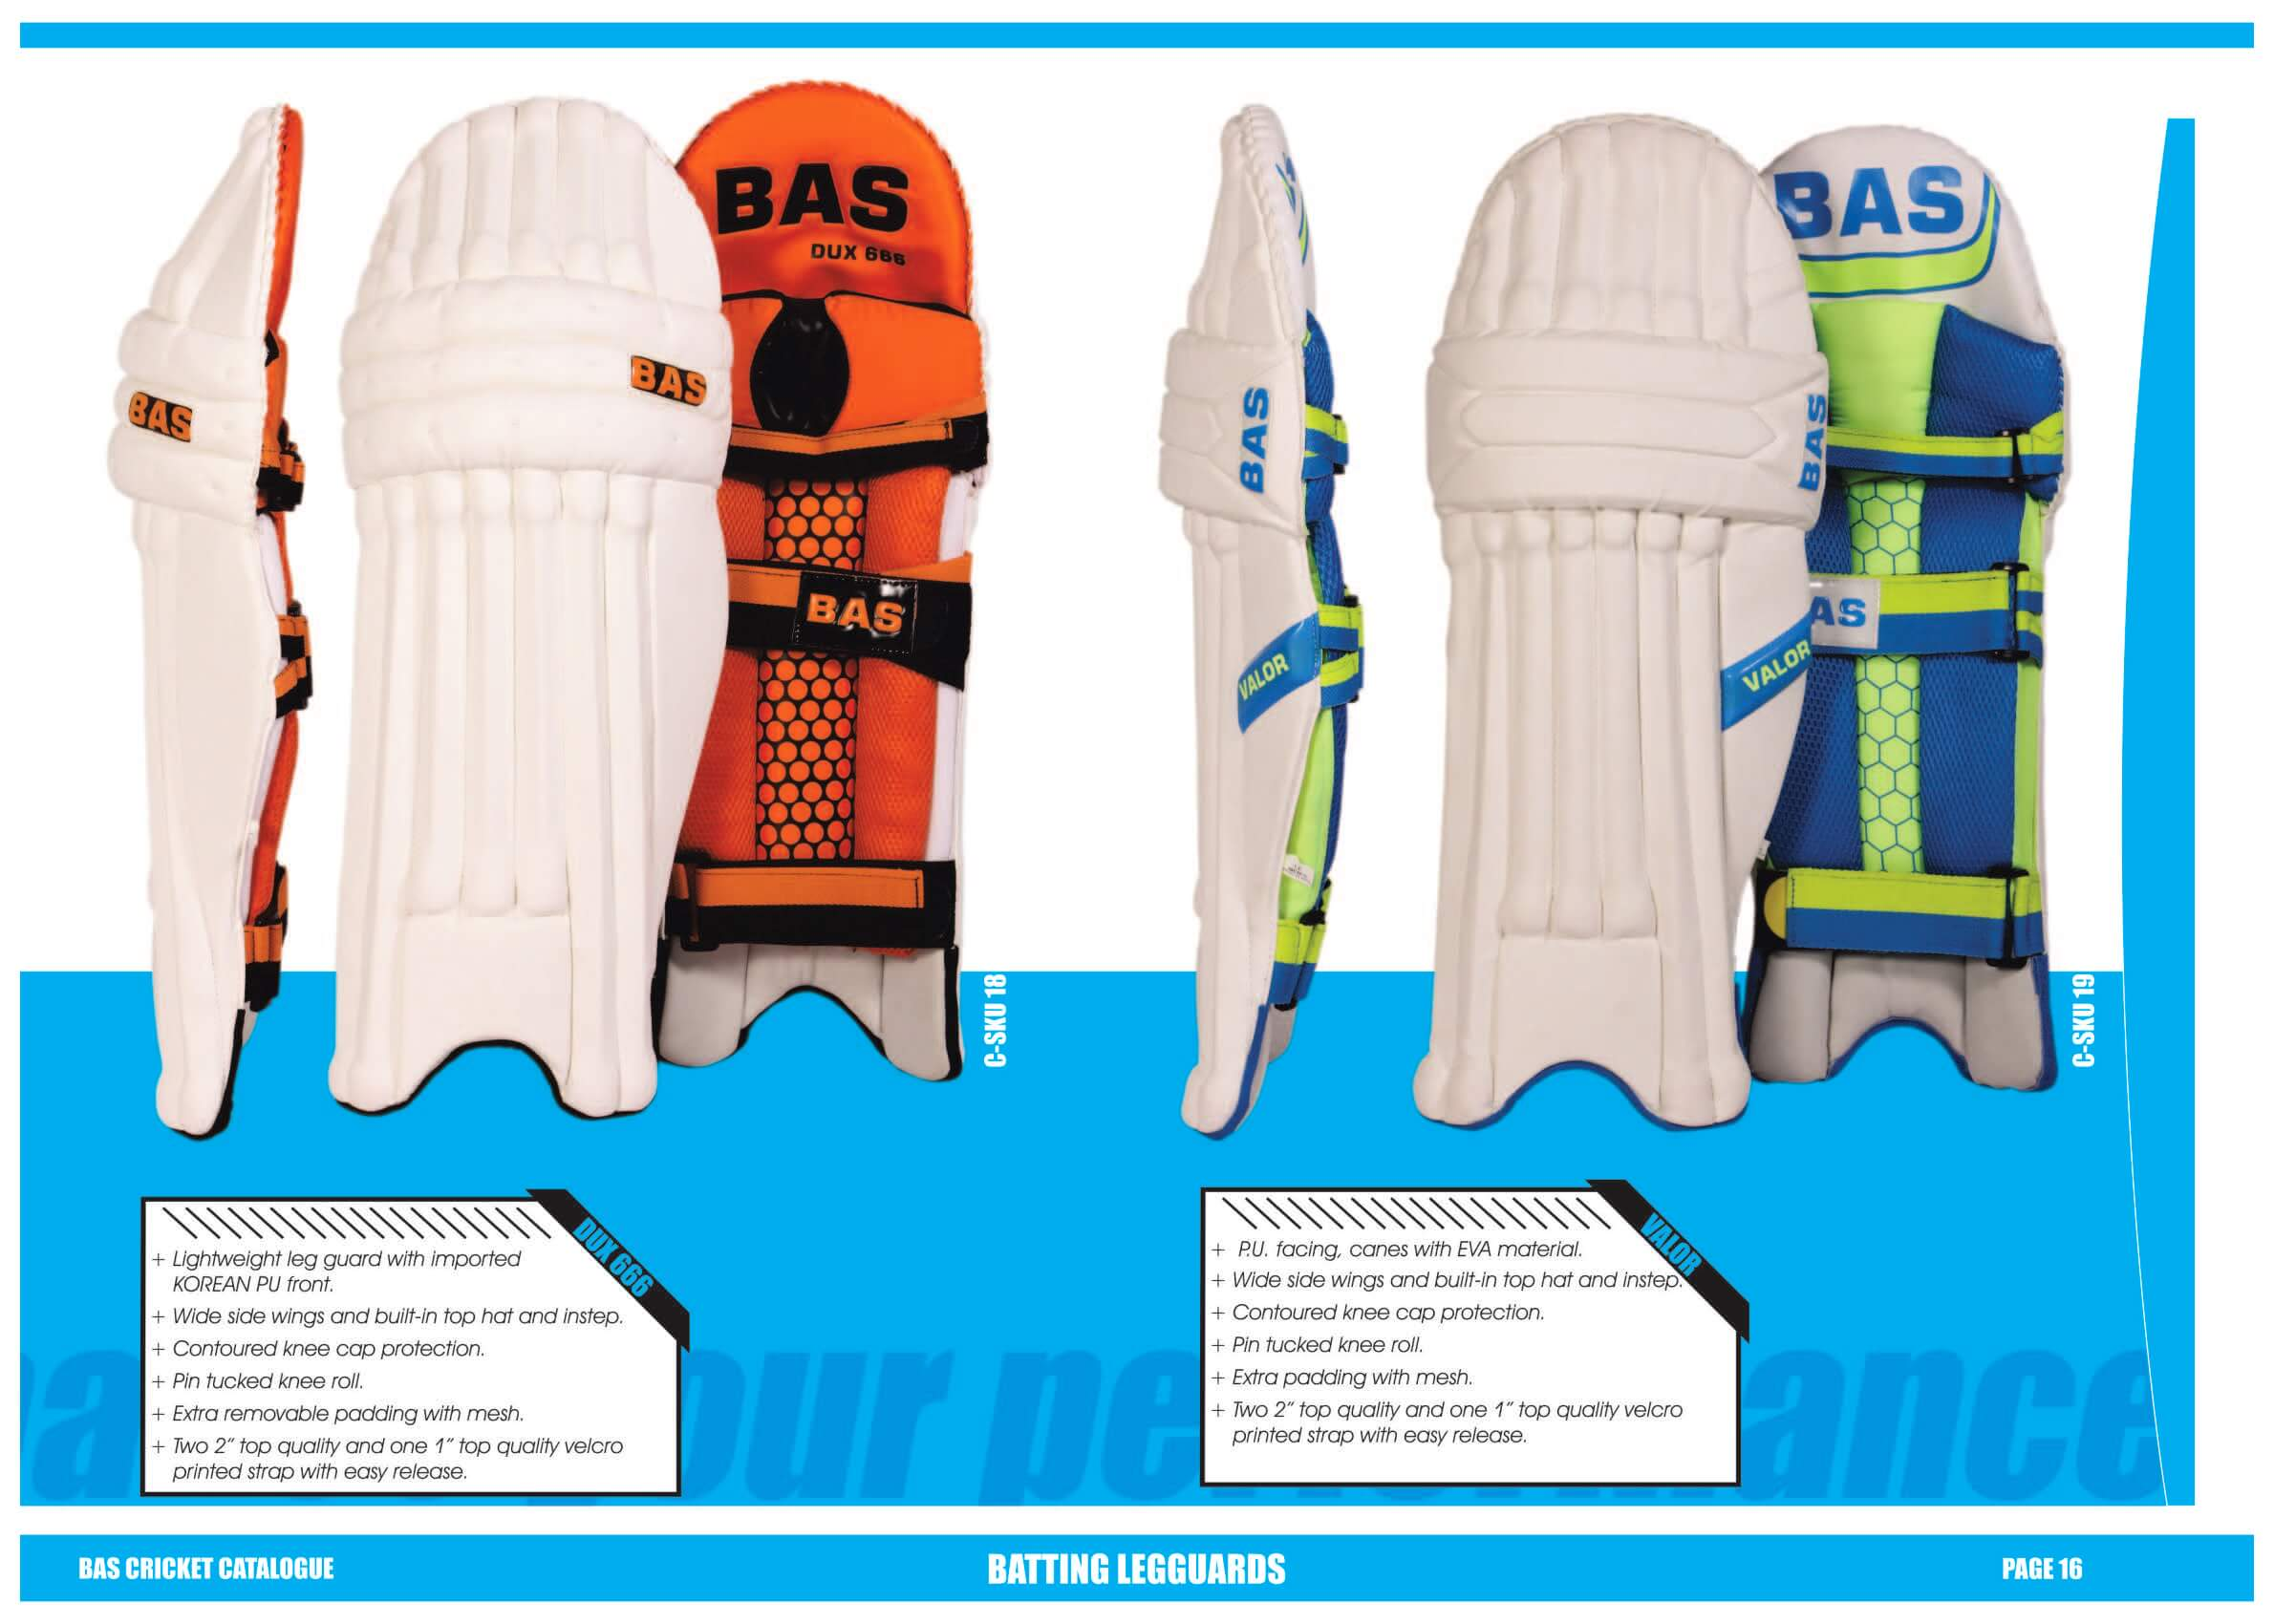 BAS Cricket Catalogue 2018